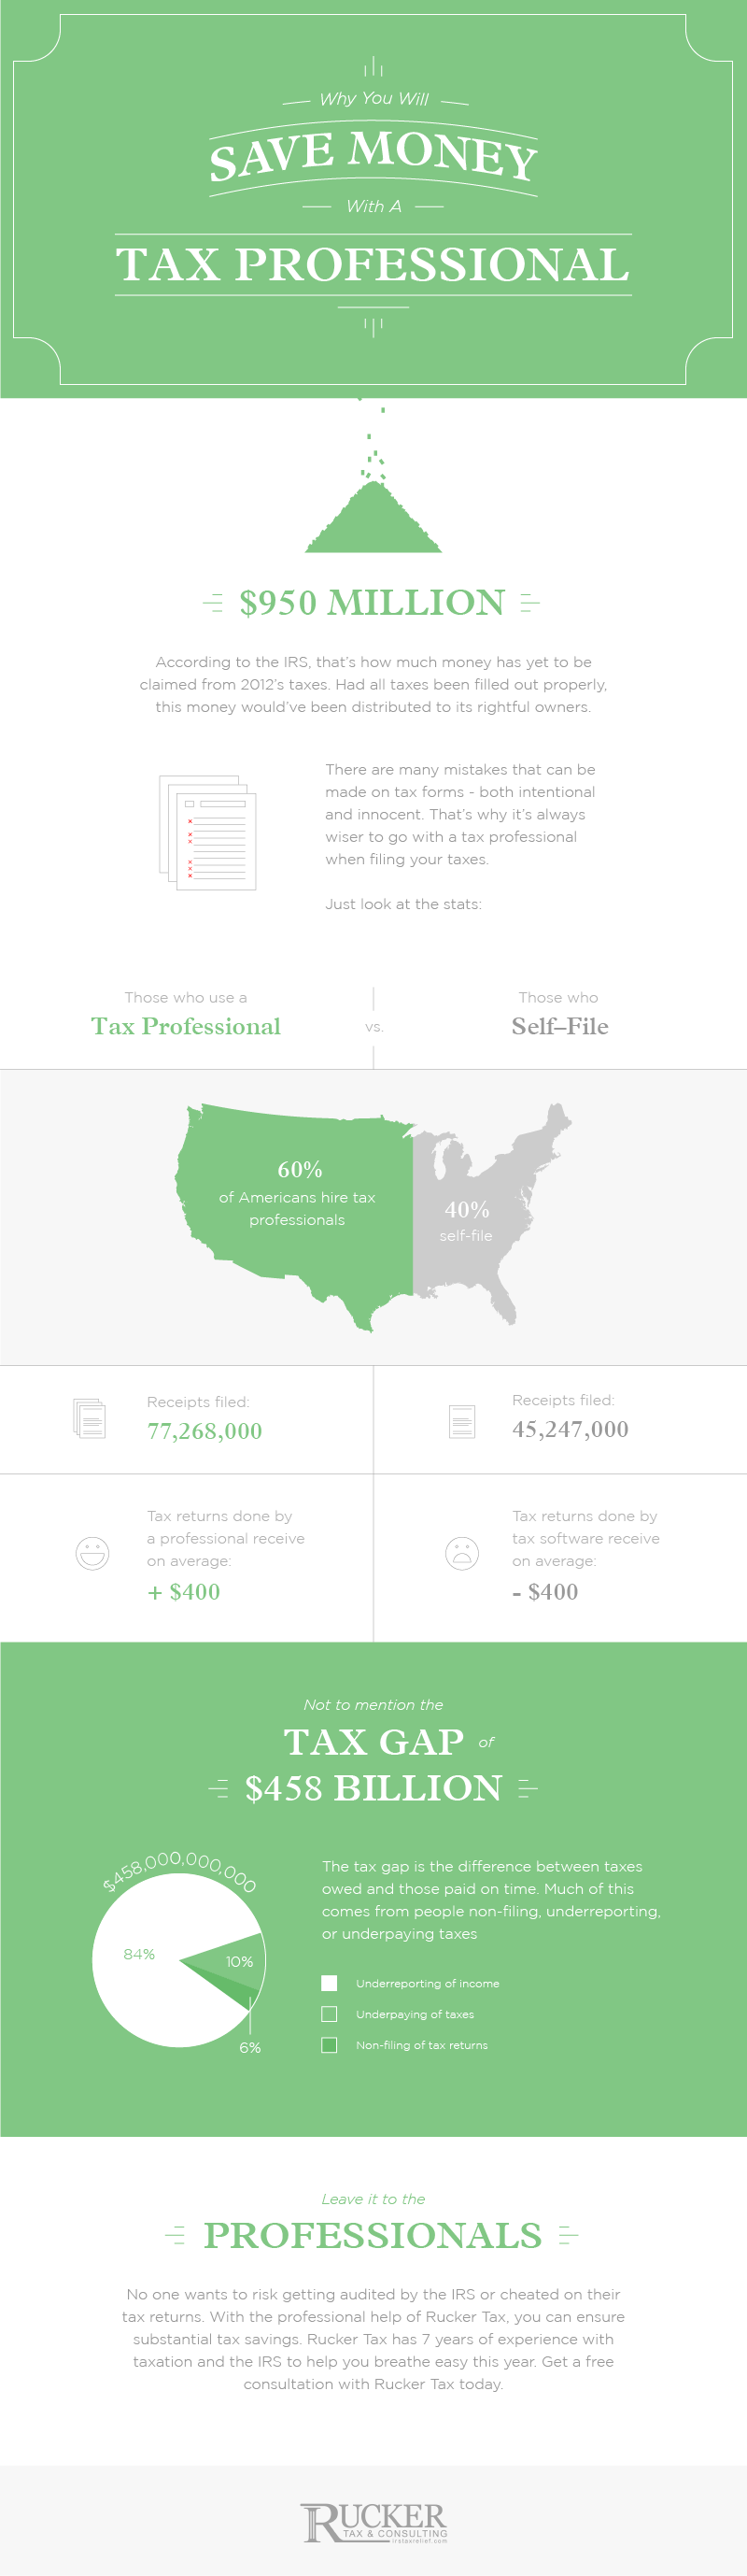 Tax filing statistics infographic - IRS facts